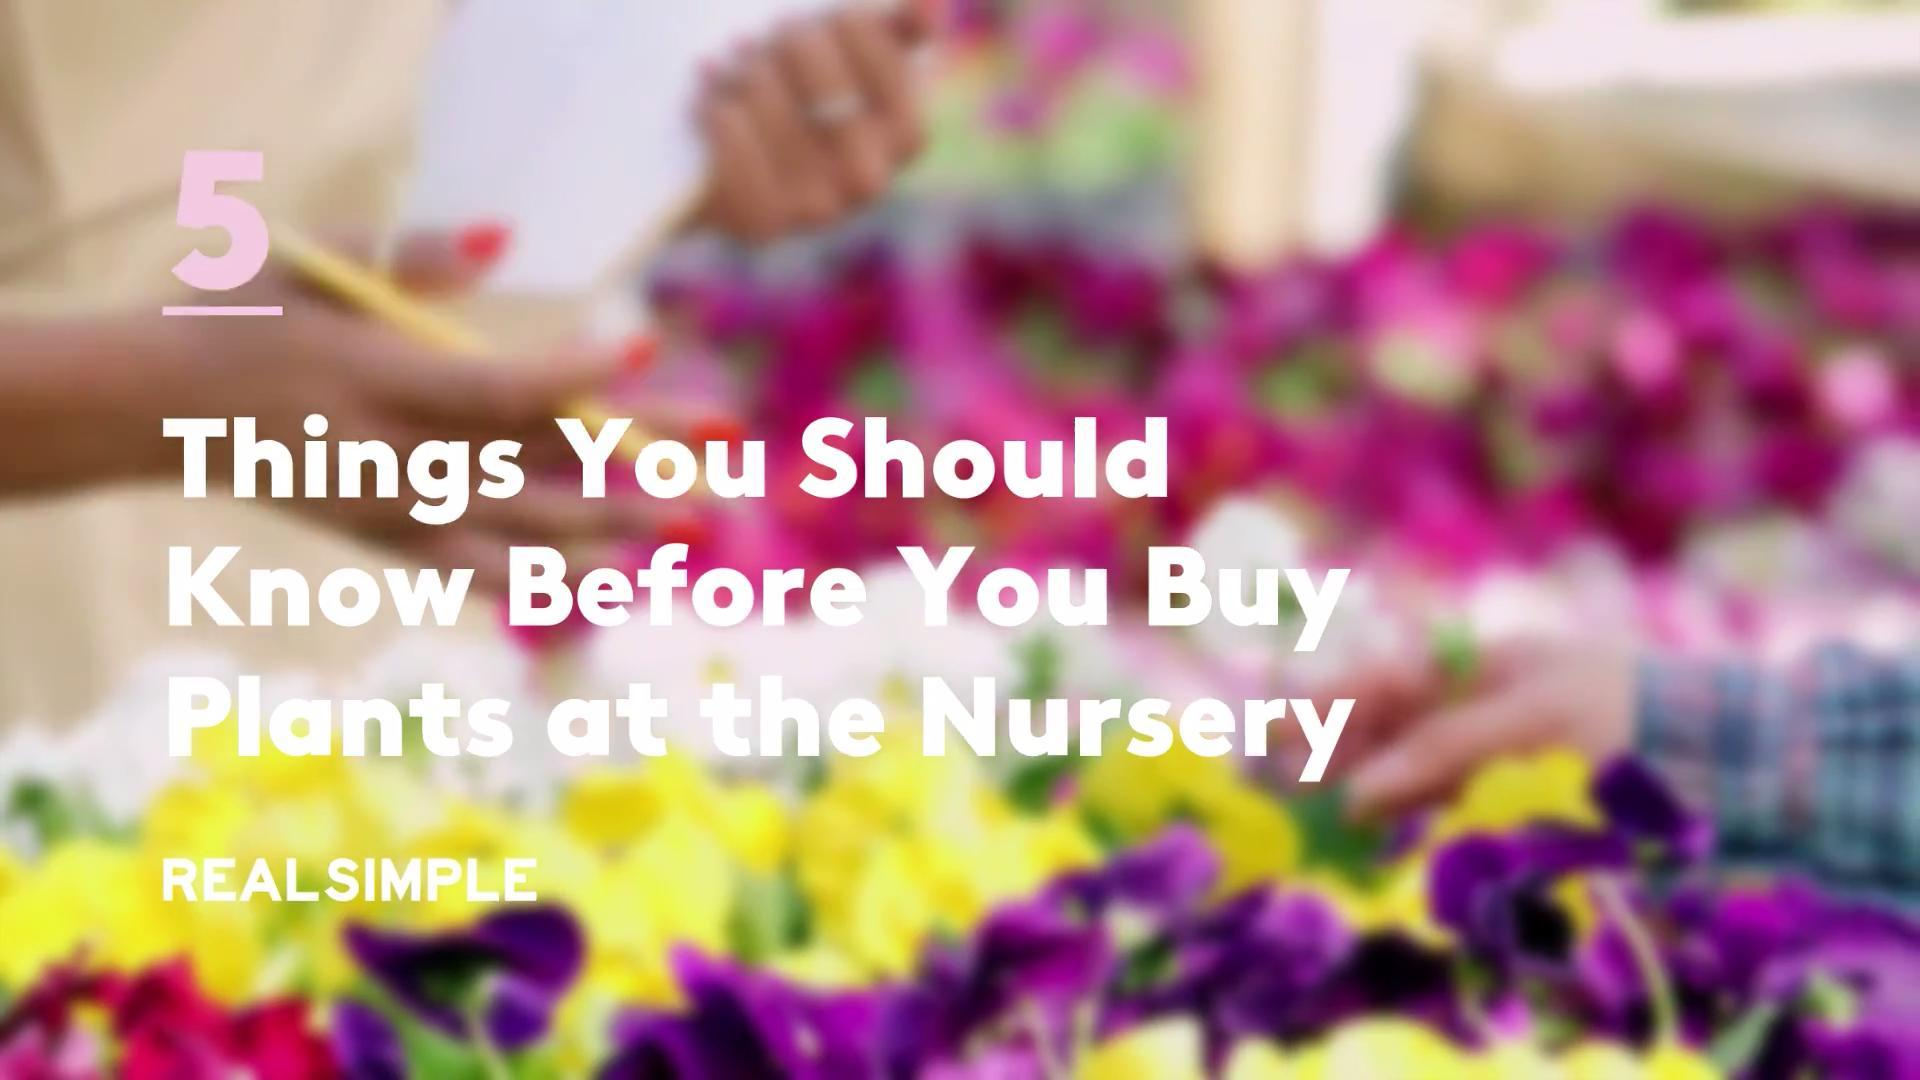 5 Things You Should Know Before You Buy Plants at the Nursery